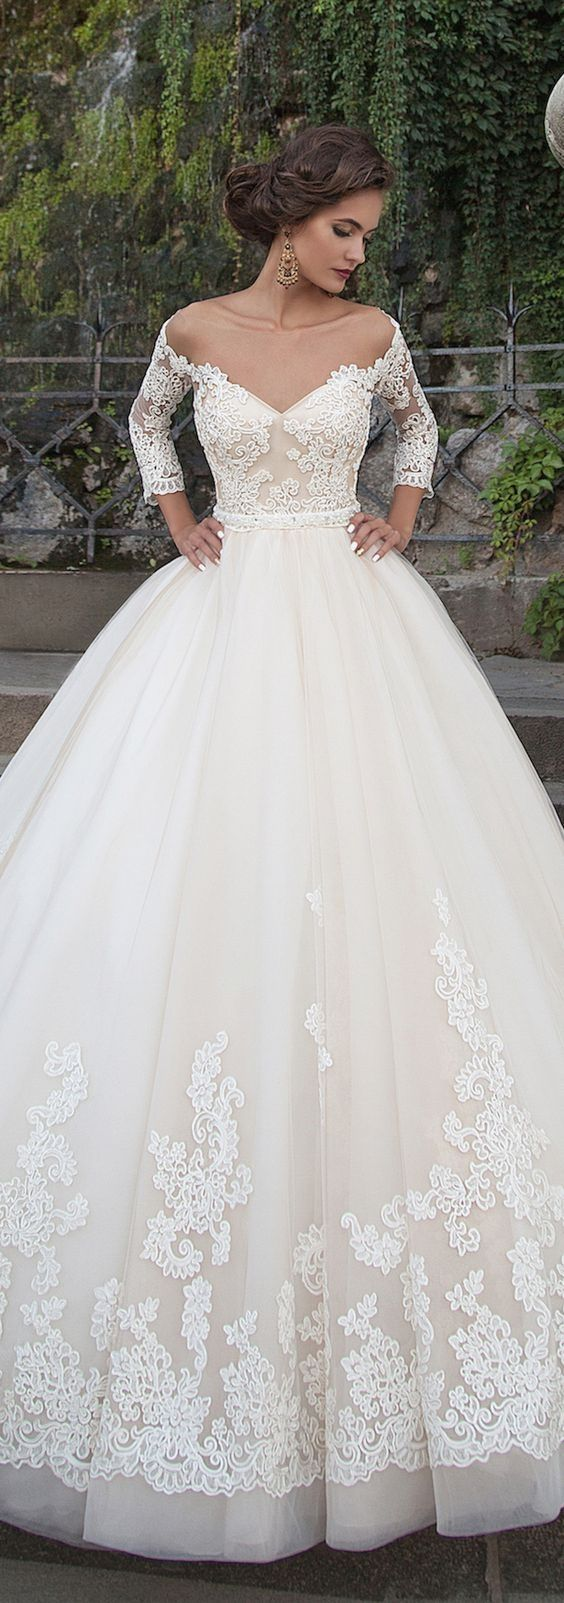 Lace dress roblox  Wedding Dresses Hippie  JULY TH WEDDINGS AND PARTY IDEAS  Pinterest